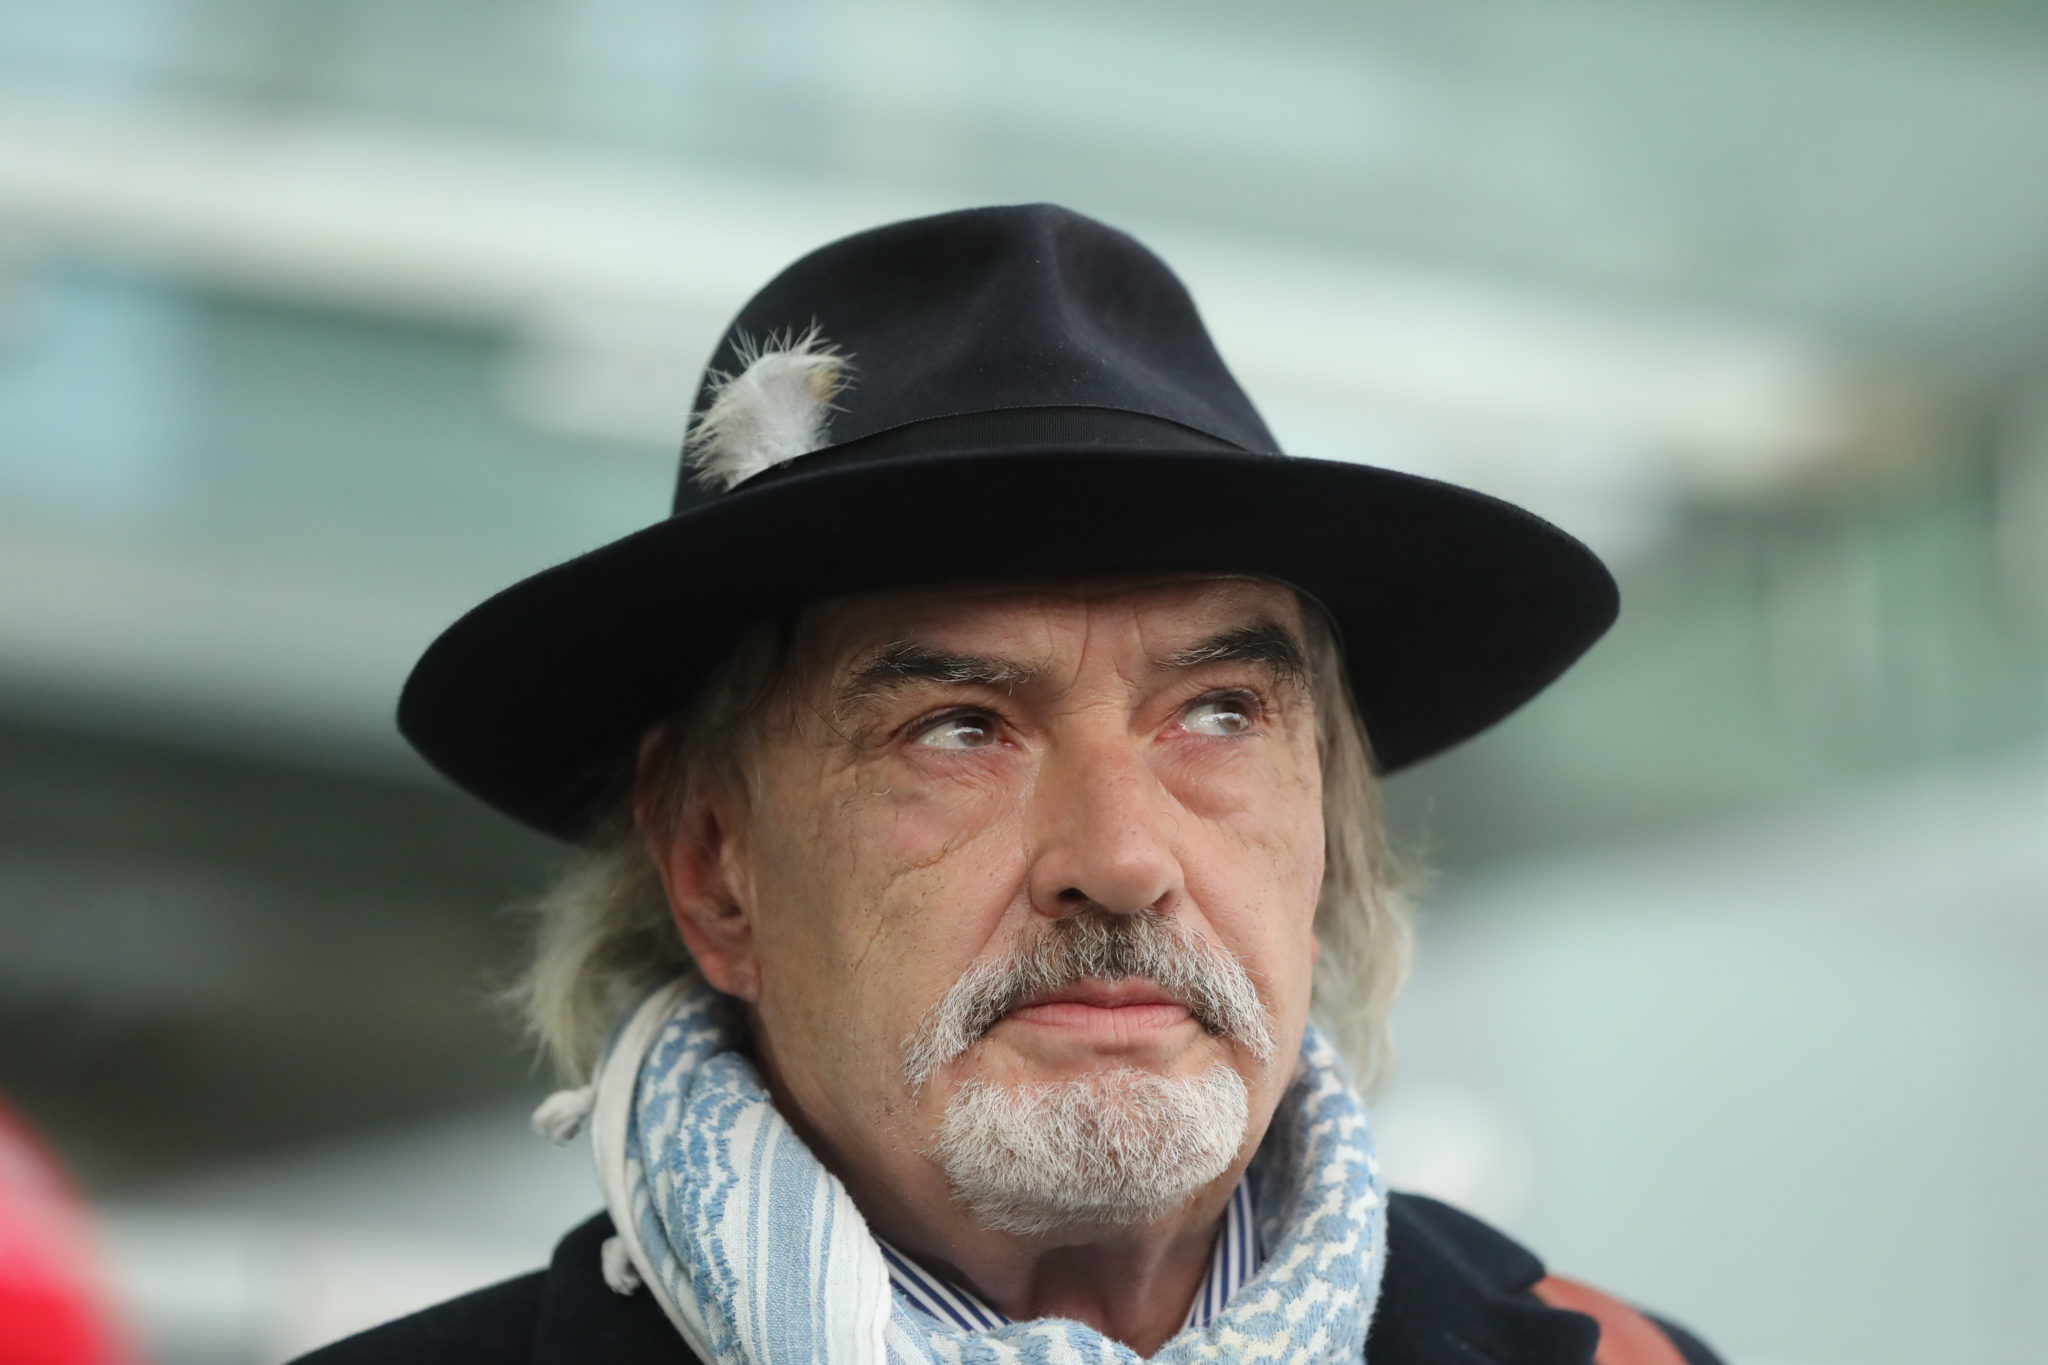 Ian Bailey outside the High Court, Dublin, after the court rejected an attempt by French authorities to extradite him for the murder of Sophie Toscan du Plantier.